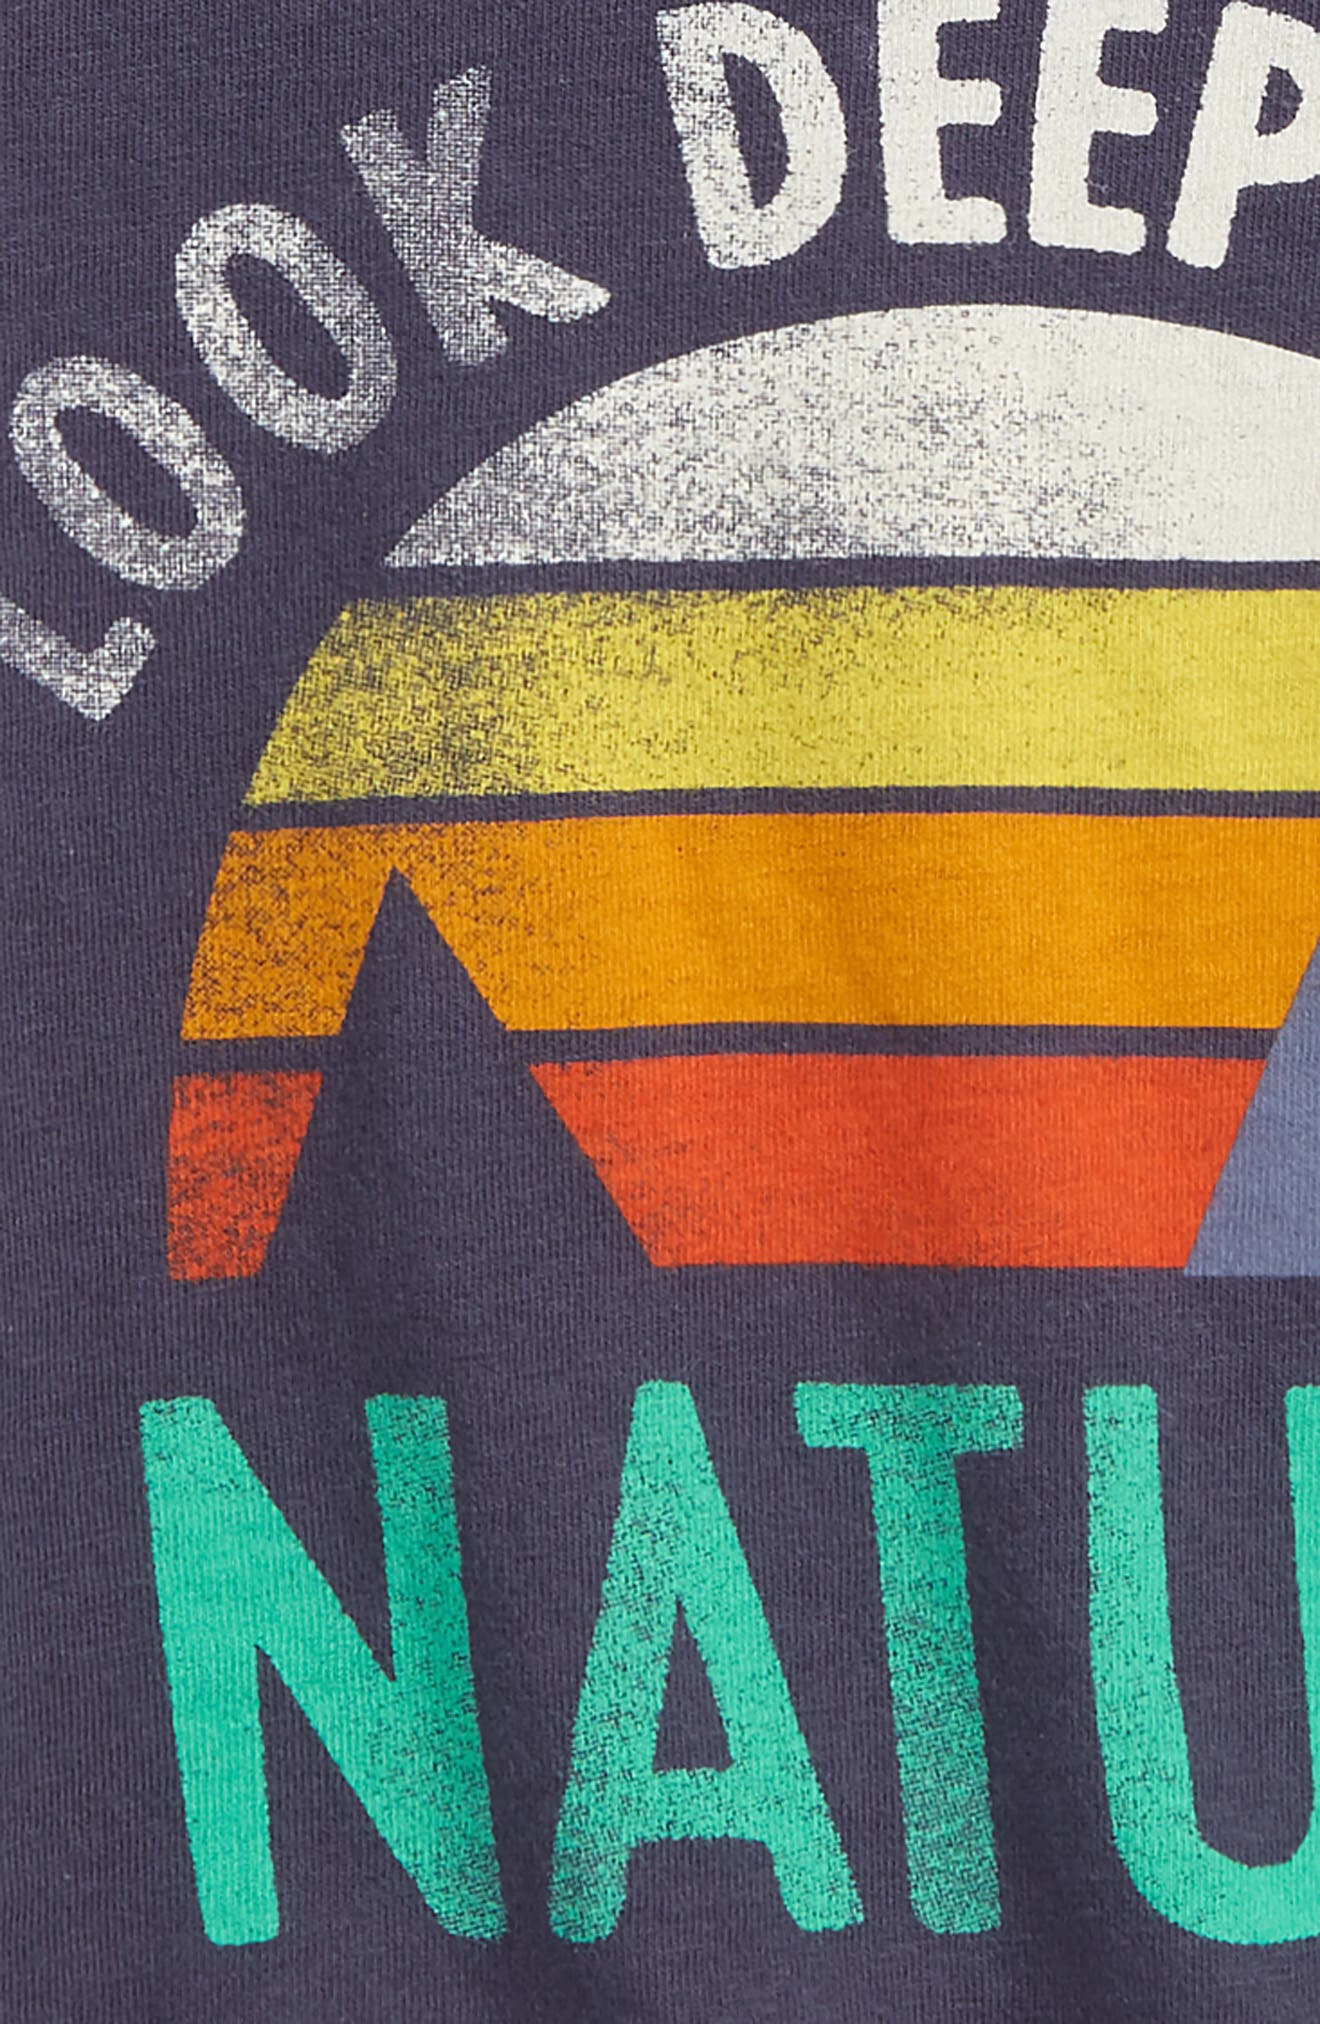 Look Deep into Nature Graphic T-Shirt,                             Alternate thumbnail 3, color,                             410